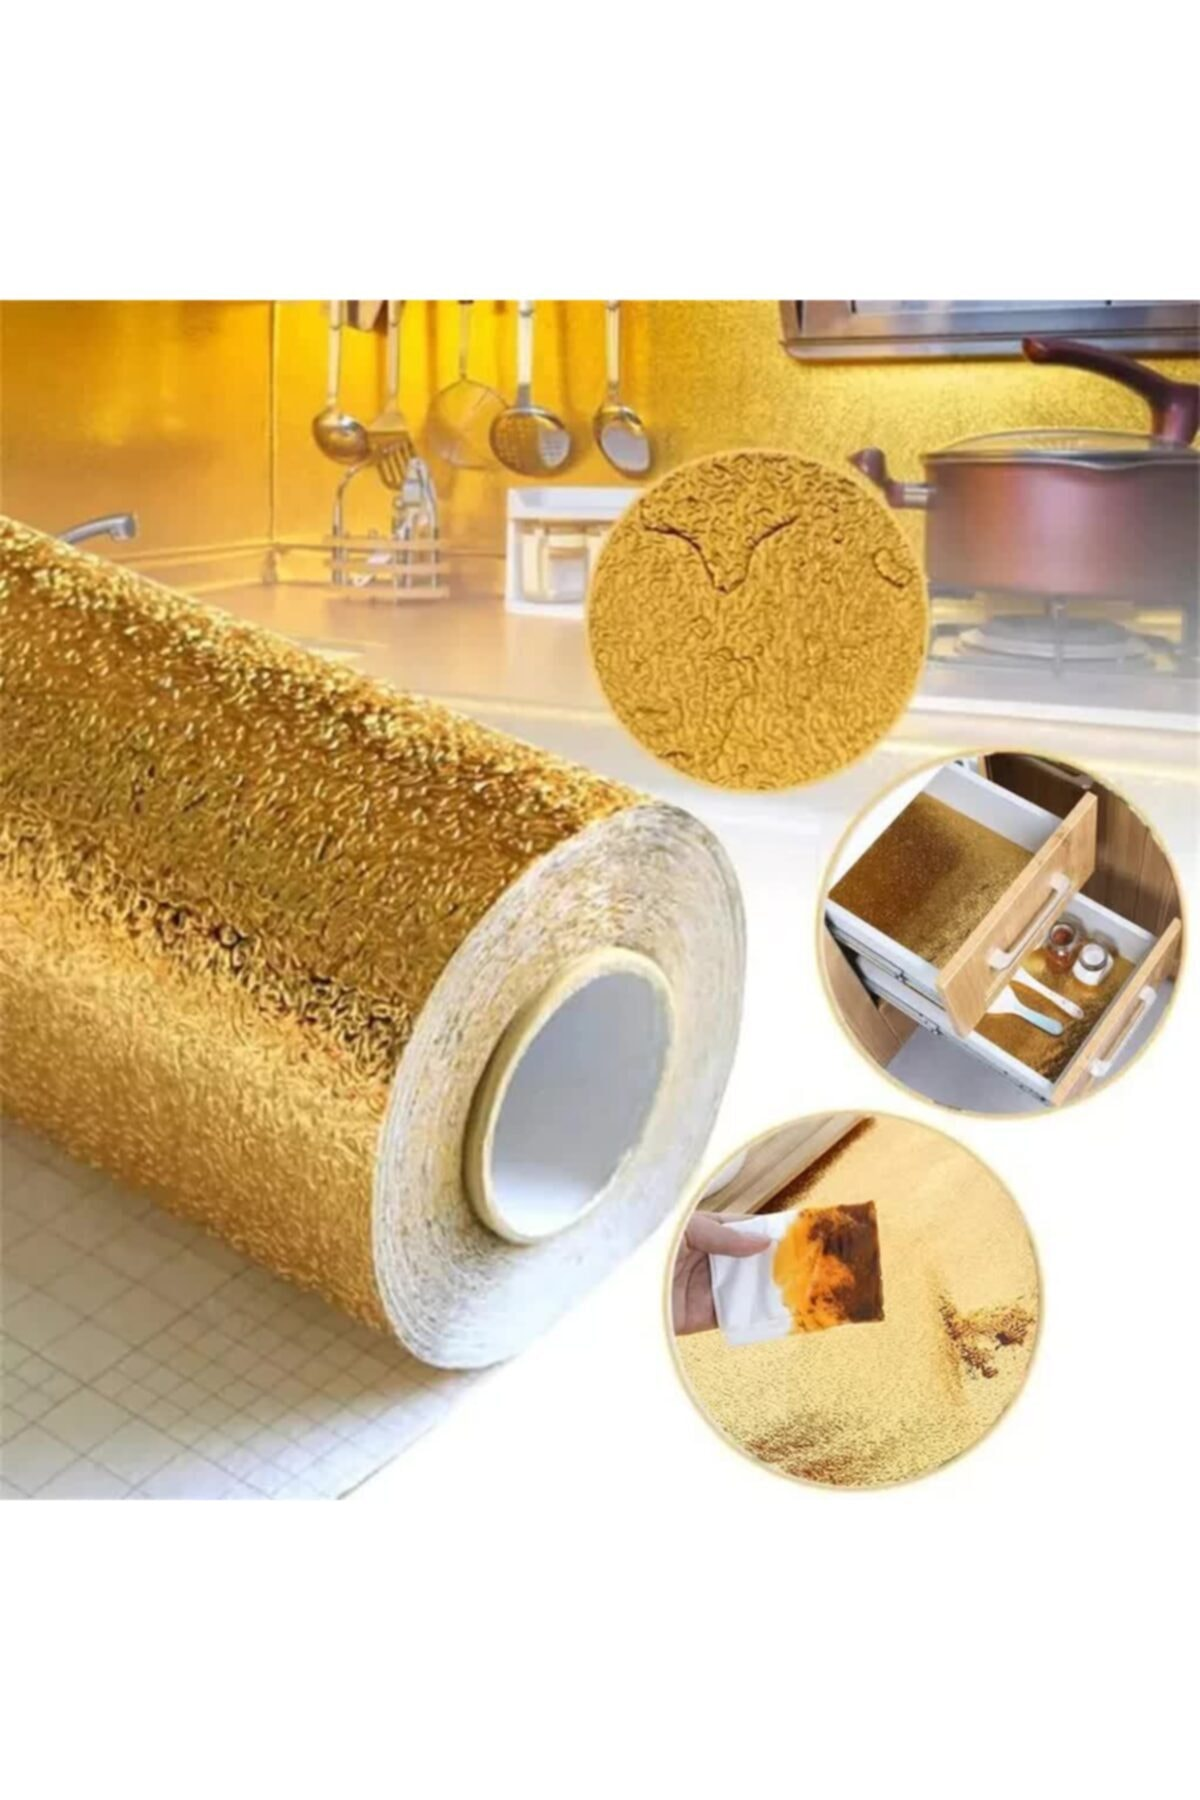 Kyrotech Self Adhesive Foil Aluminum Foil Self Adhesive Drawer Wall Cladding Gold Color 100 X 40cm